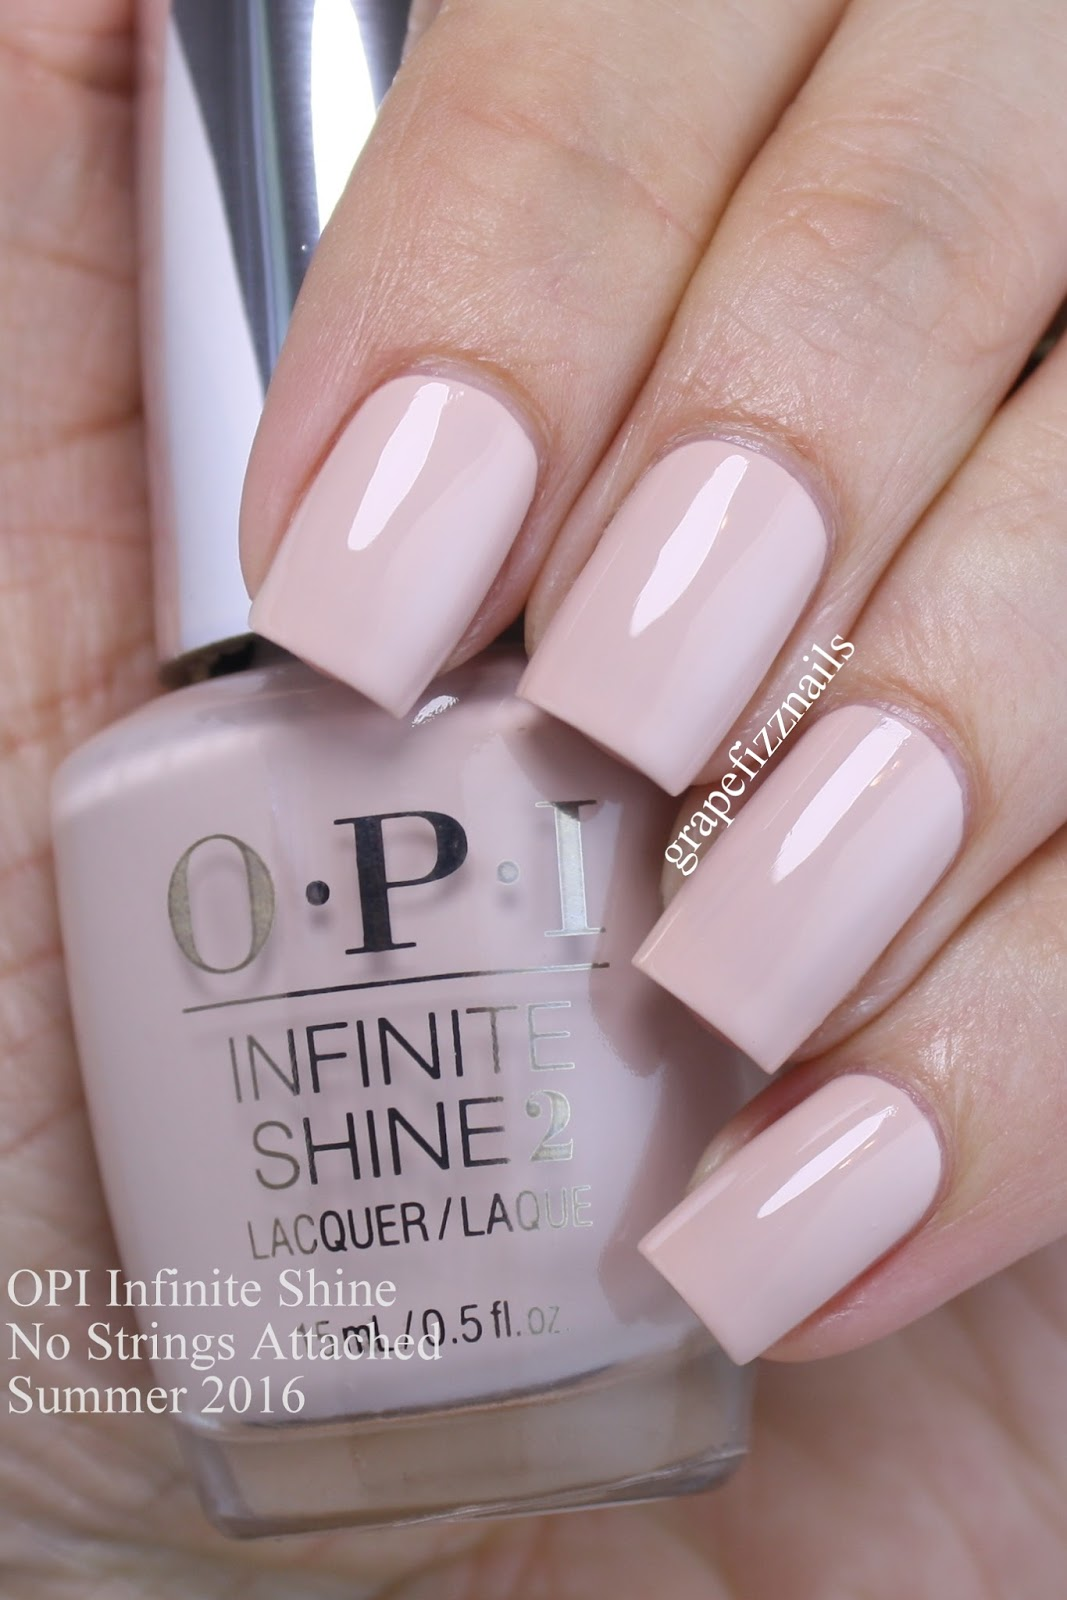 Grape Fizz Nails Opi Infinite Shine The Nuances Of Neutral Summer 2016